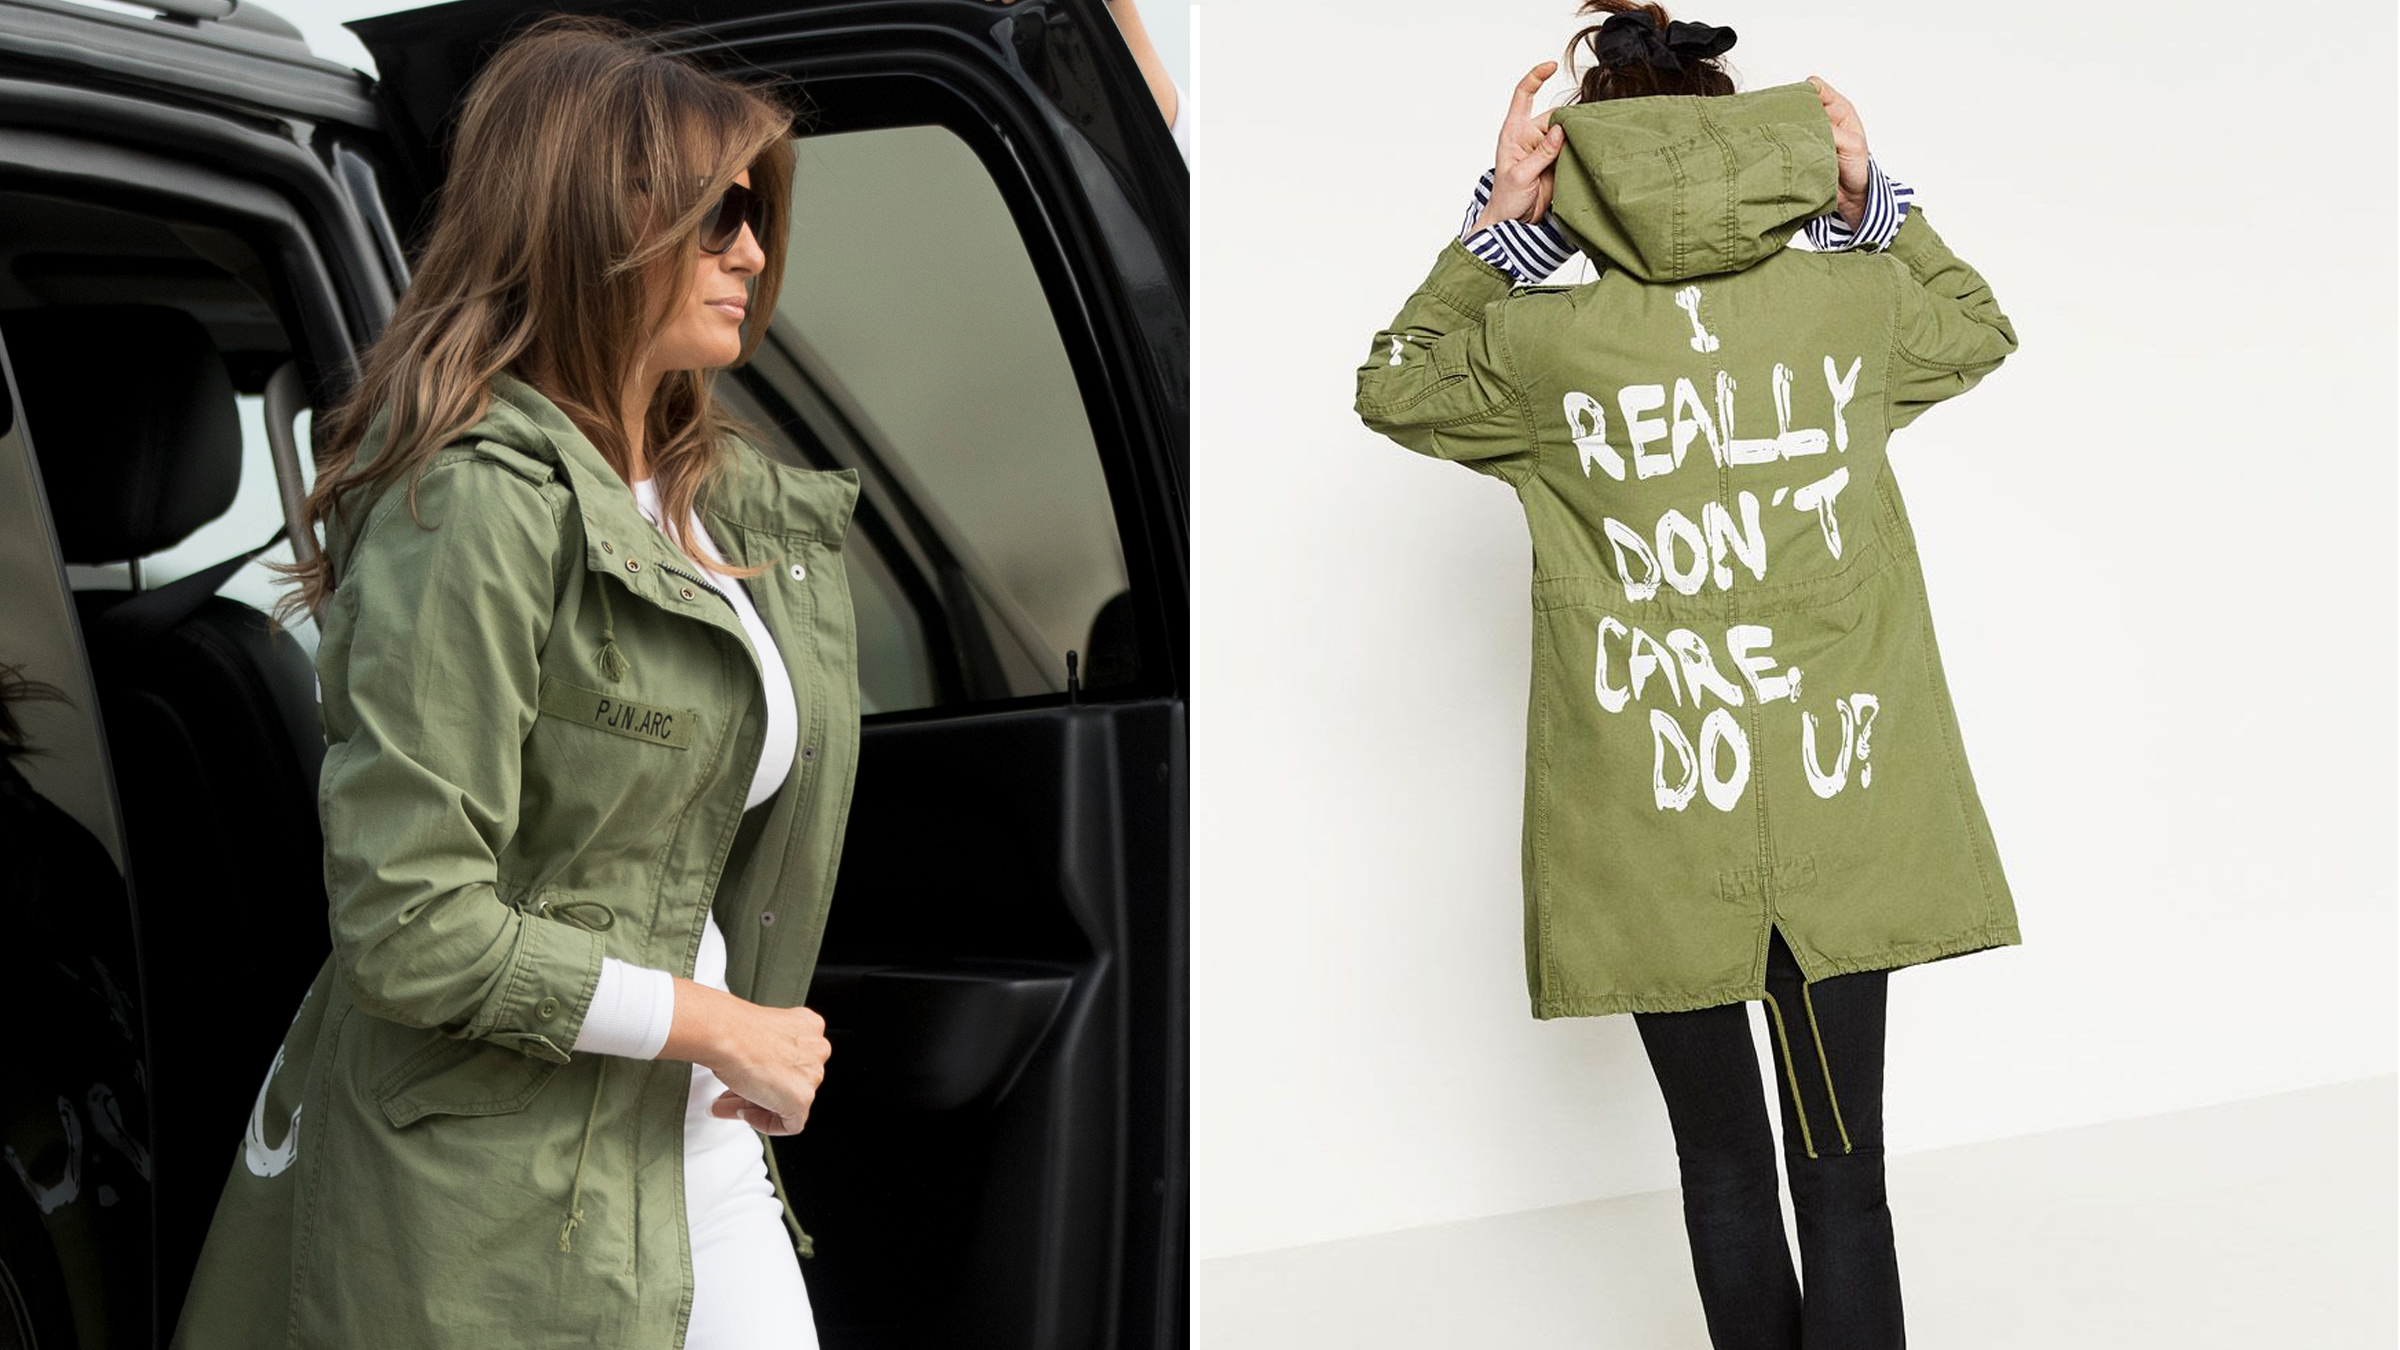 Melania Wore an Absurdly Insensitive Jacket on Visit to Border